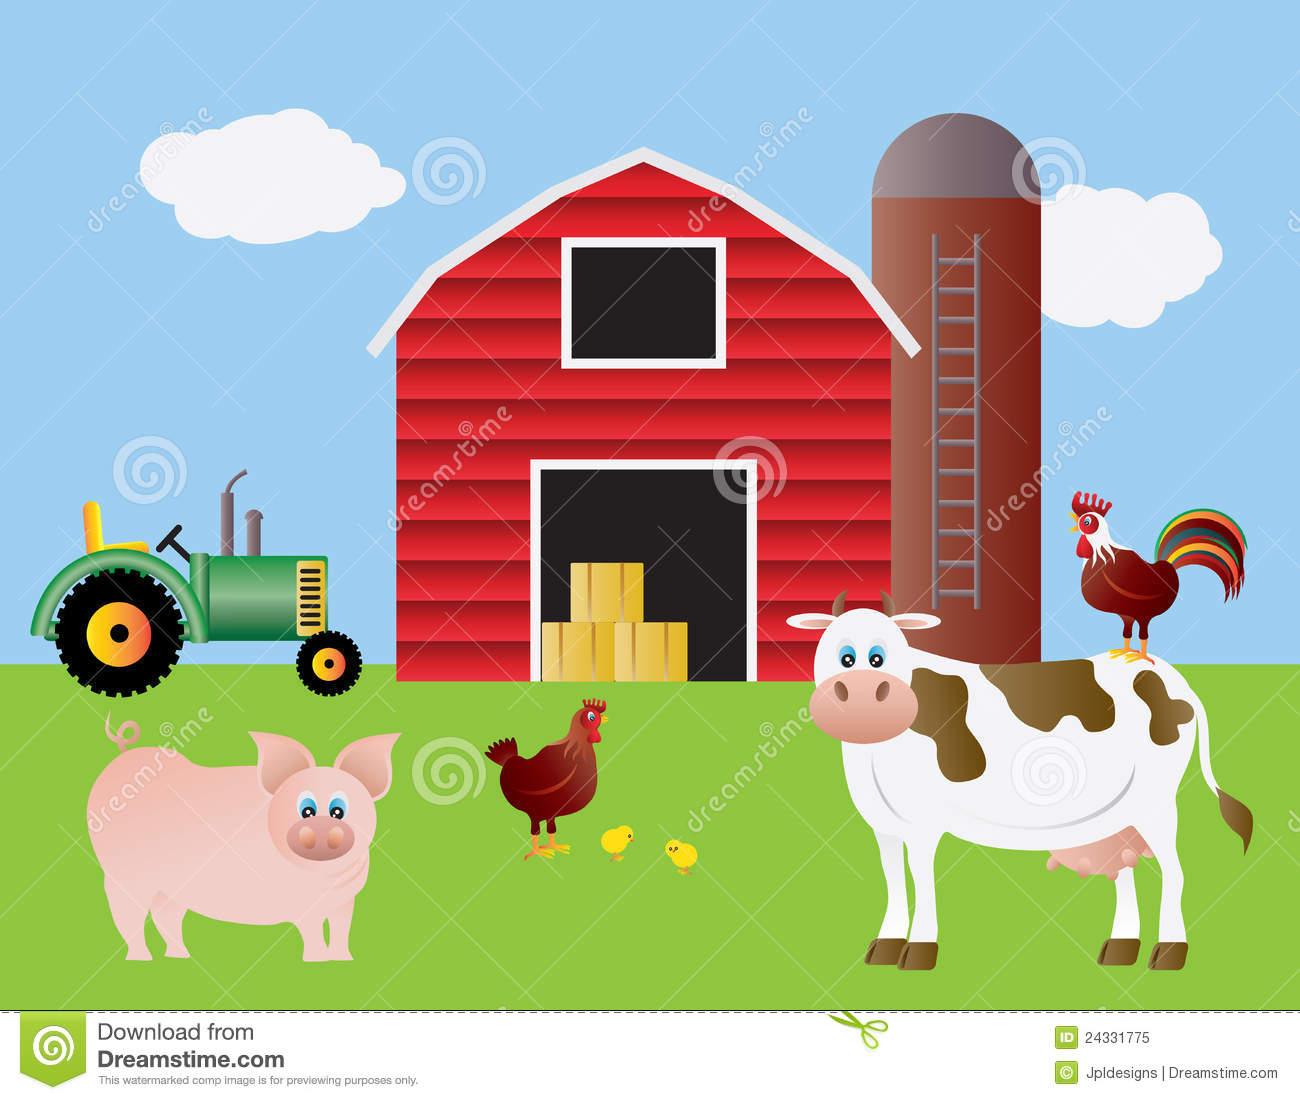 Farm Barn red barn with farm animals royalty free stock image - image: 15719576